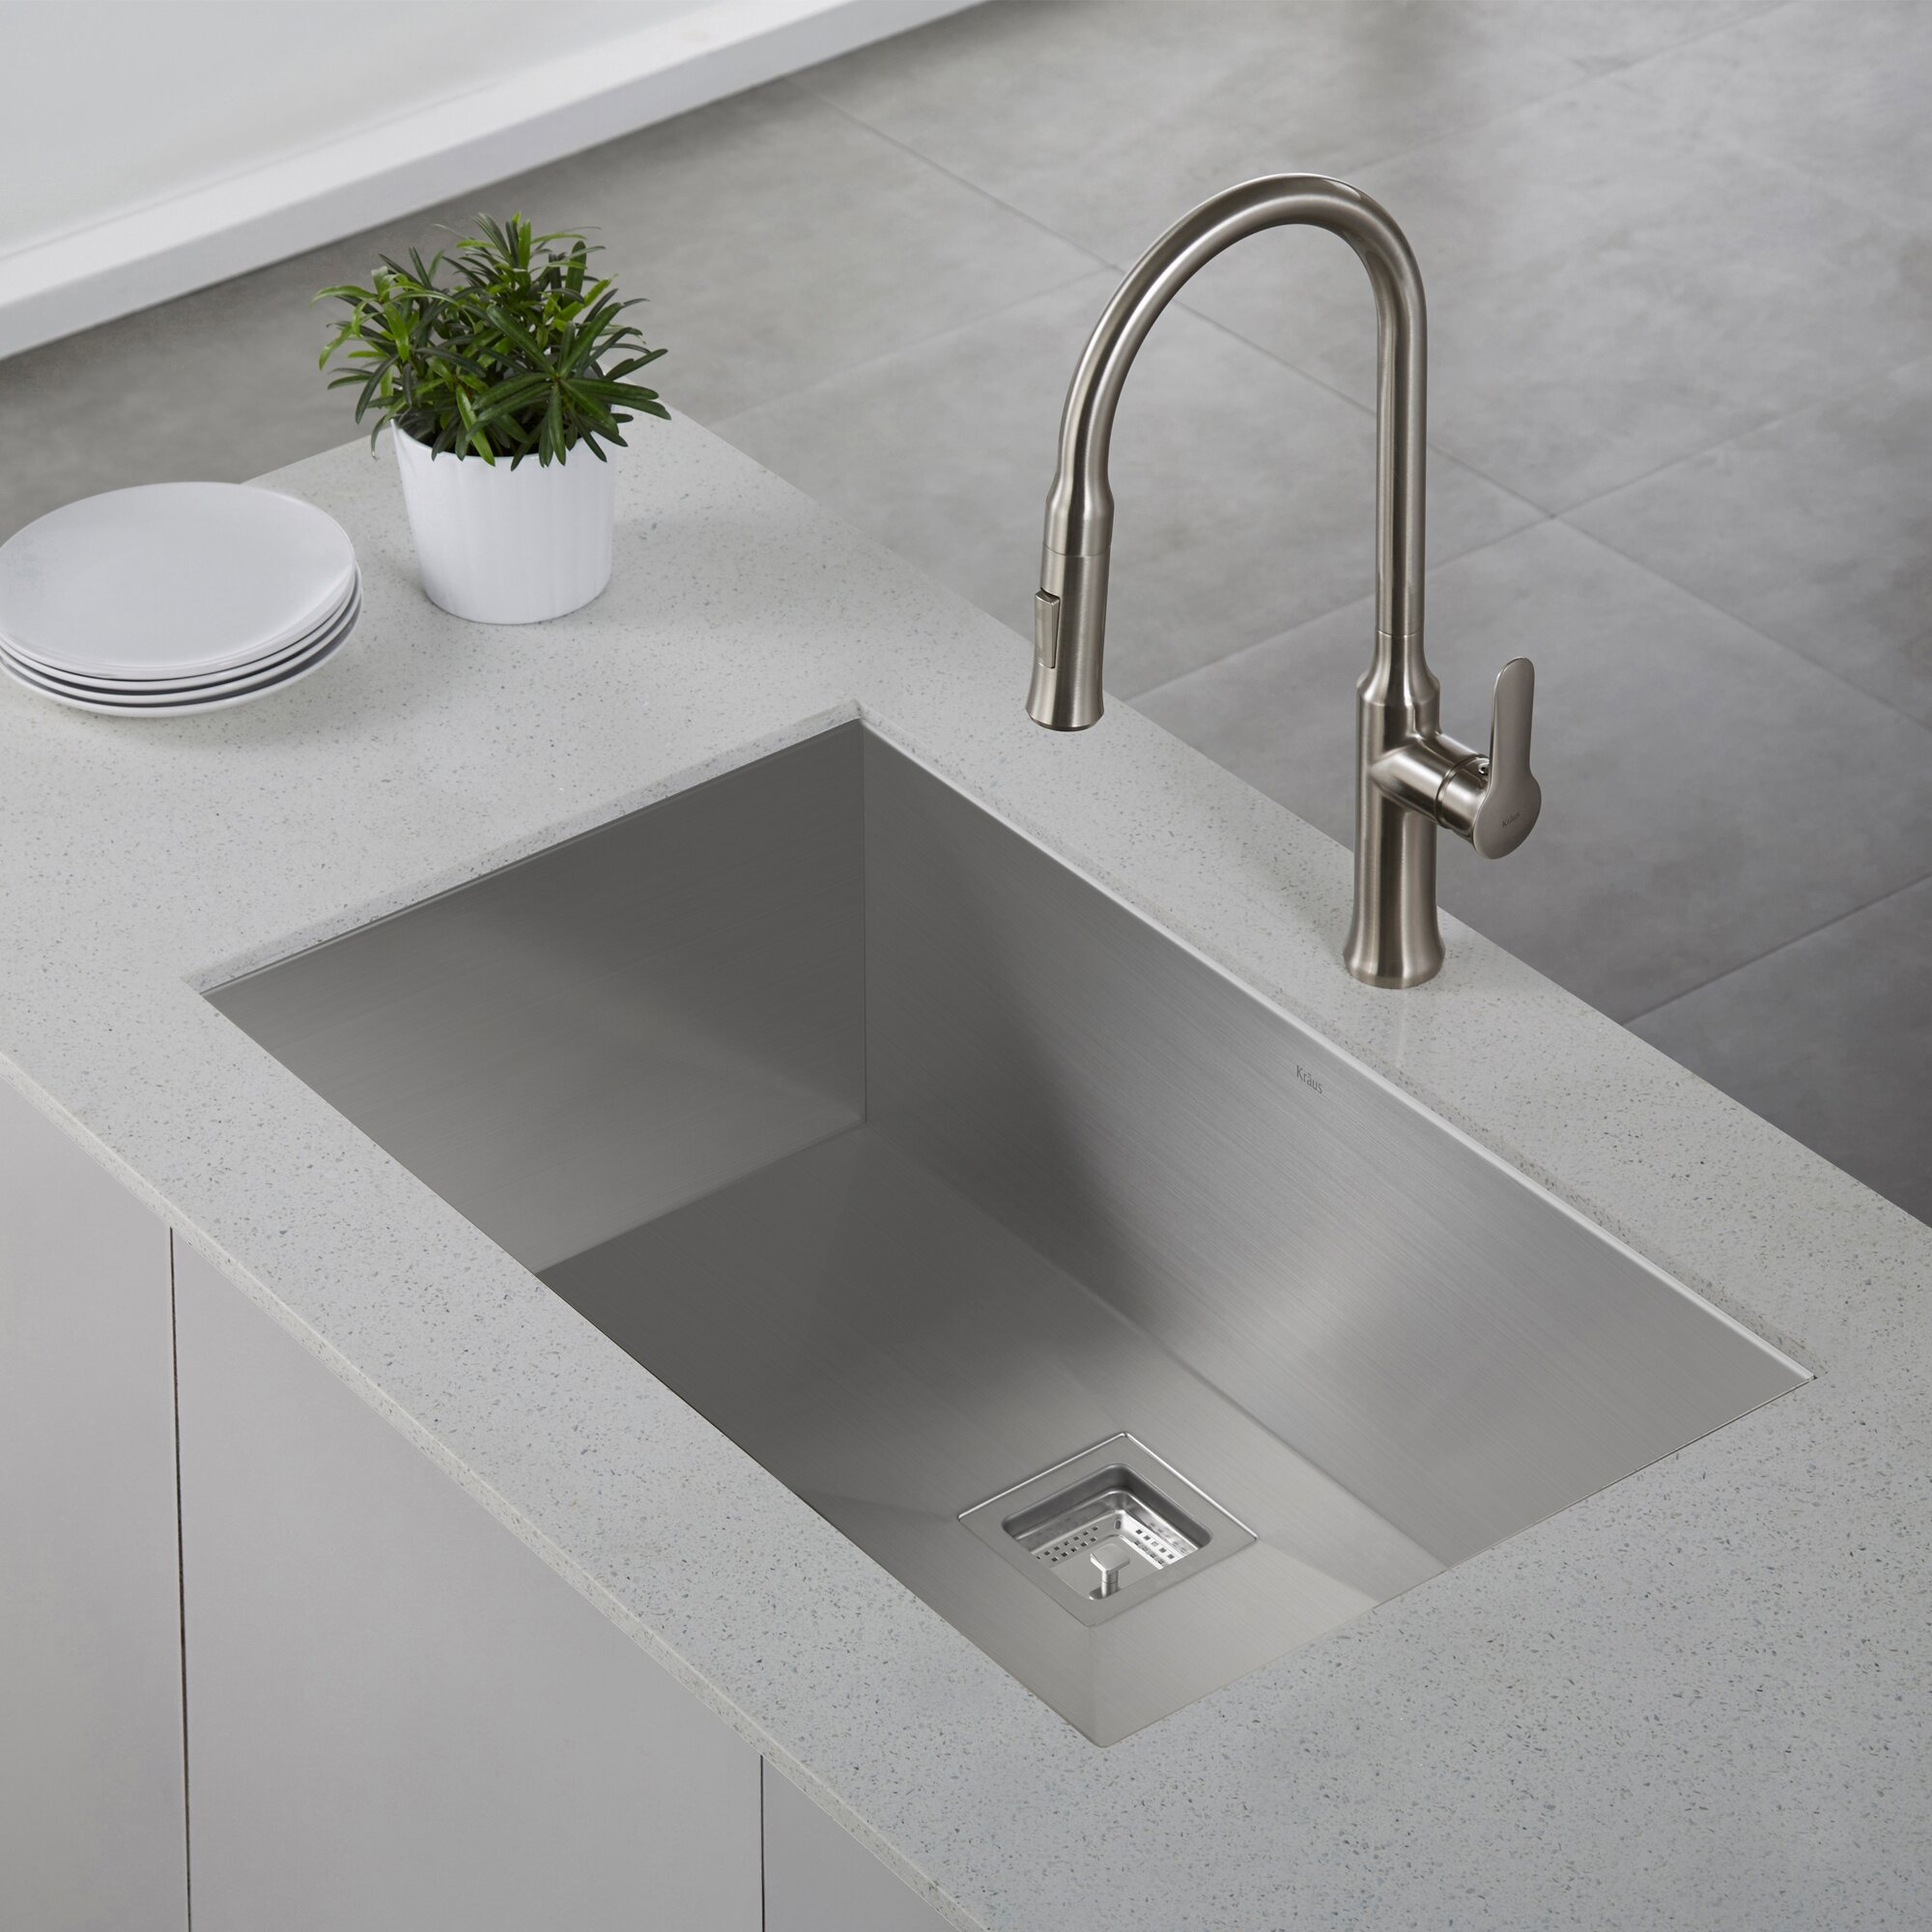 Undermount Stainless Steel Sink Single Bowl : ... Handmade Undermount Single Bowl Stainless Steel Kitchen Sink Wayfair